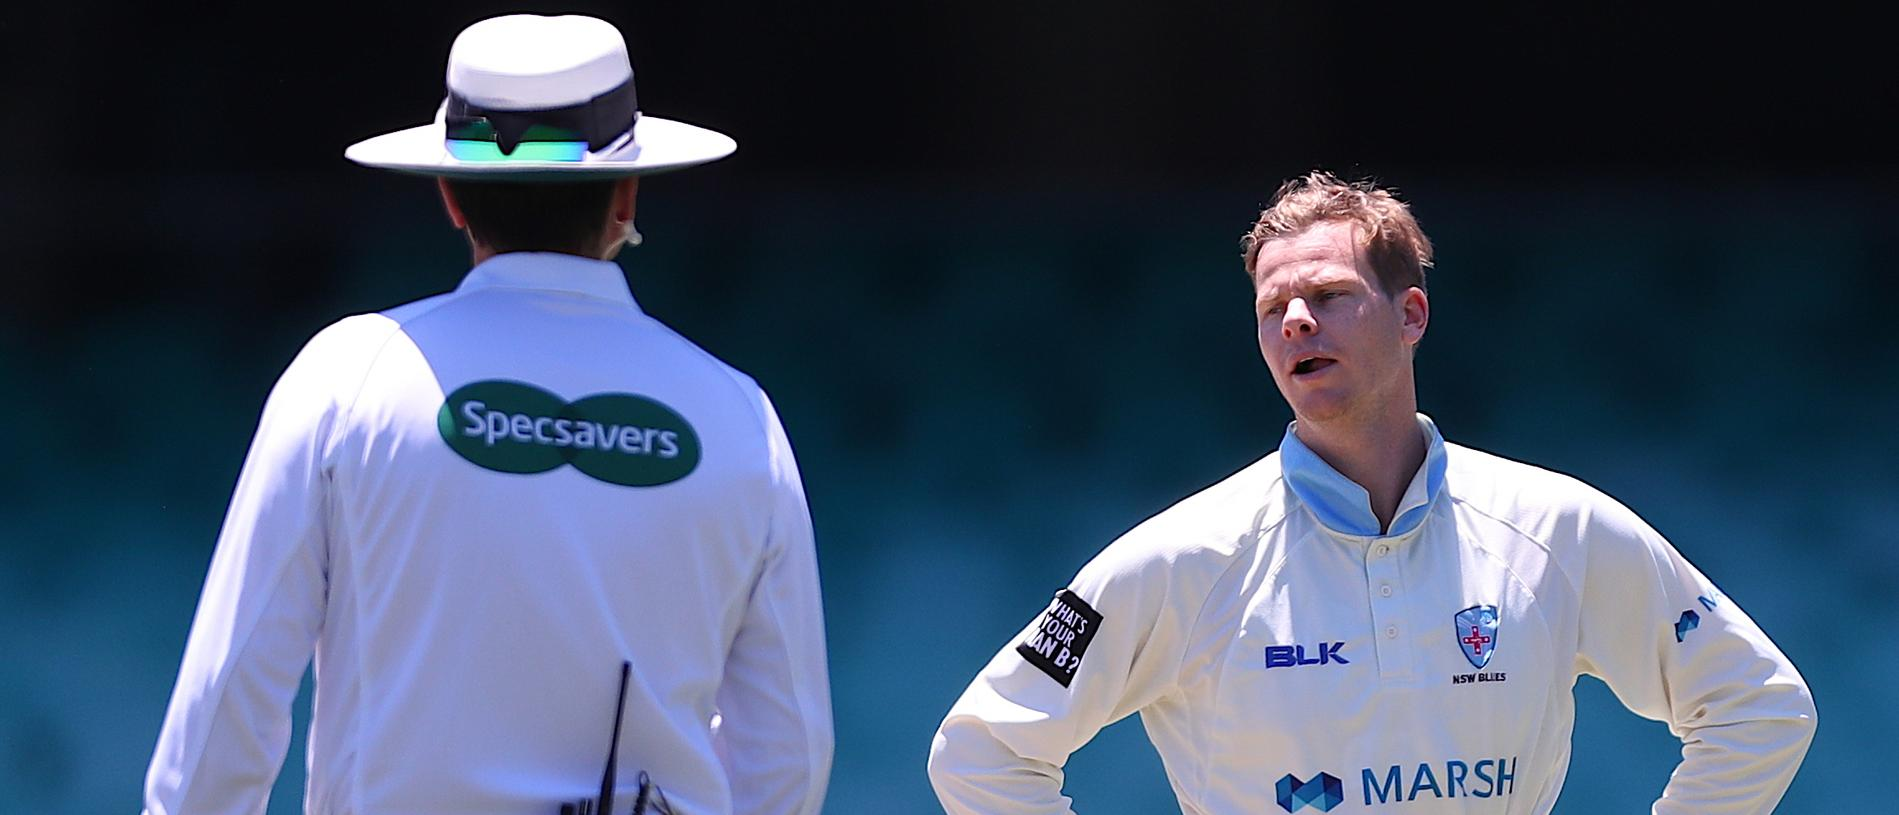 New South Wales player Steve Smith reacts as he bowls an over during Day 4 of the Marsh Sheffield Shield match between New South Wales and Western Australia at the SCG in Sydney, Thursday, November 14, 2019. (AAP Image/David Gray) NO ARCHIVING, EDITORIAL USE ONLY, IMAGES TO BE USED FOR NEWS REPORTING PURPOSES ONLY, NO COMMERCIAL USE WHATSOEVER, NO USE IN BOOKS WITHOUT PRIOR WRITTEN CONSENT FROM AAP